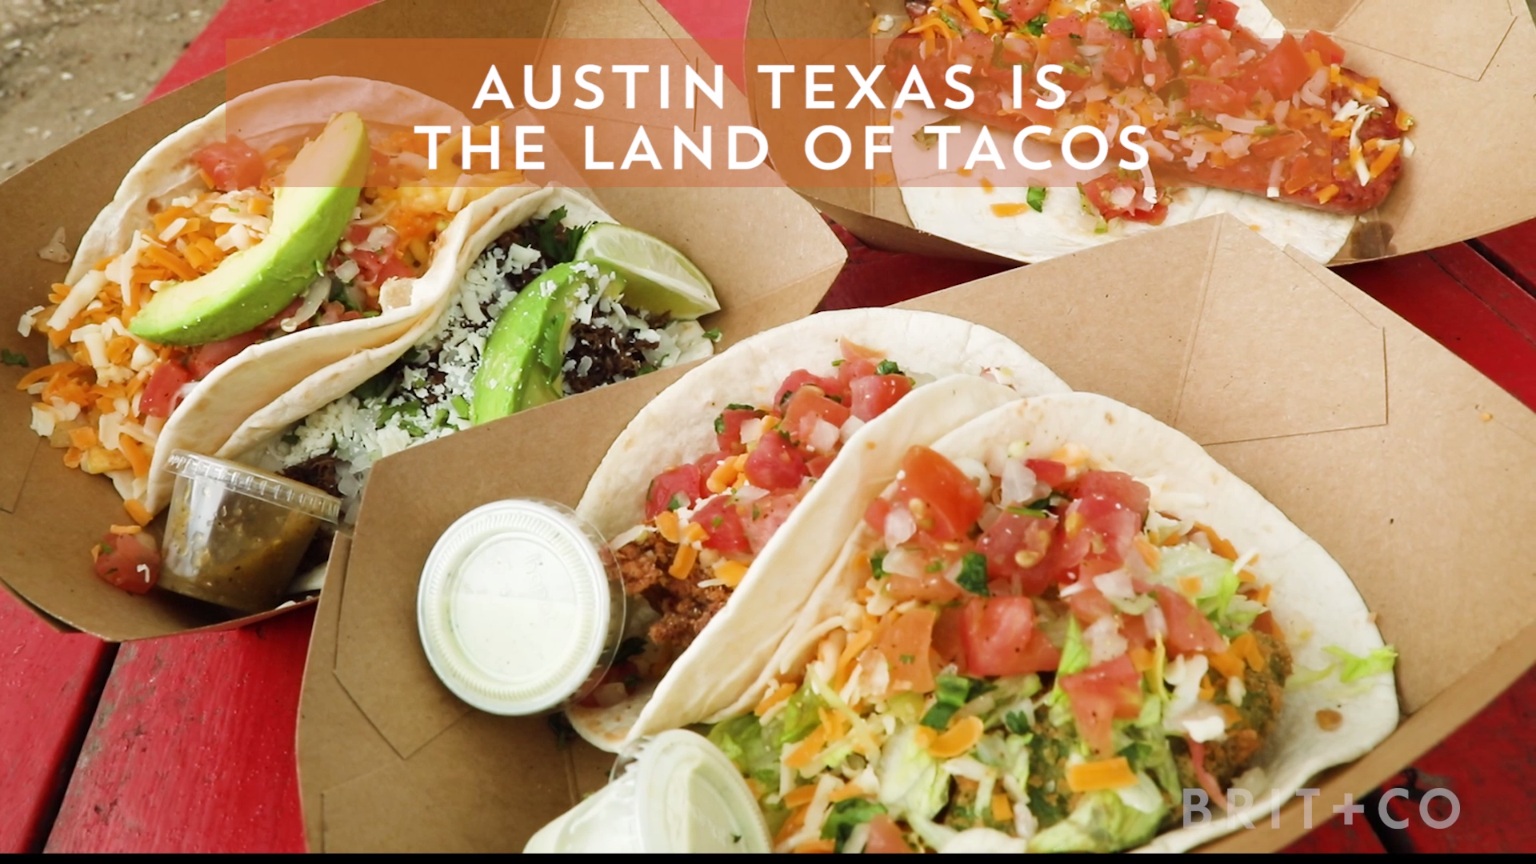 Watch This Video To Discover The Best Places To Eat Tacos